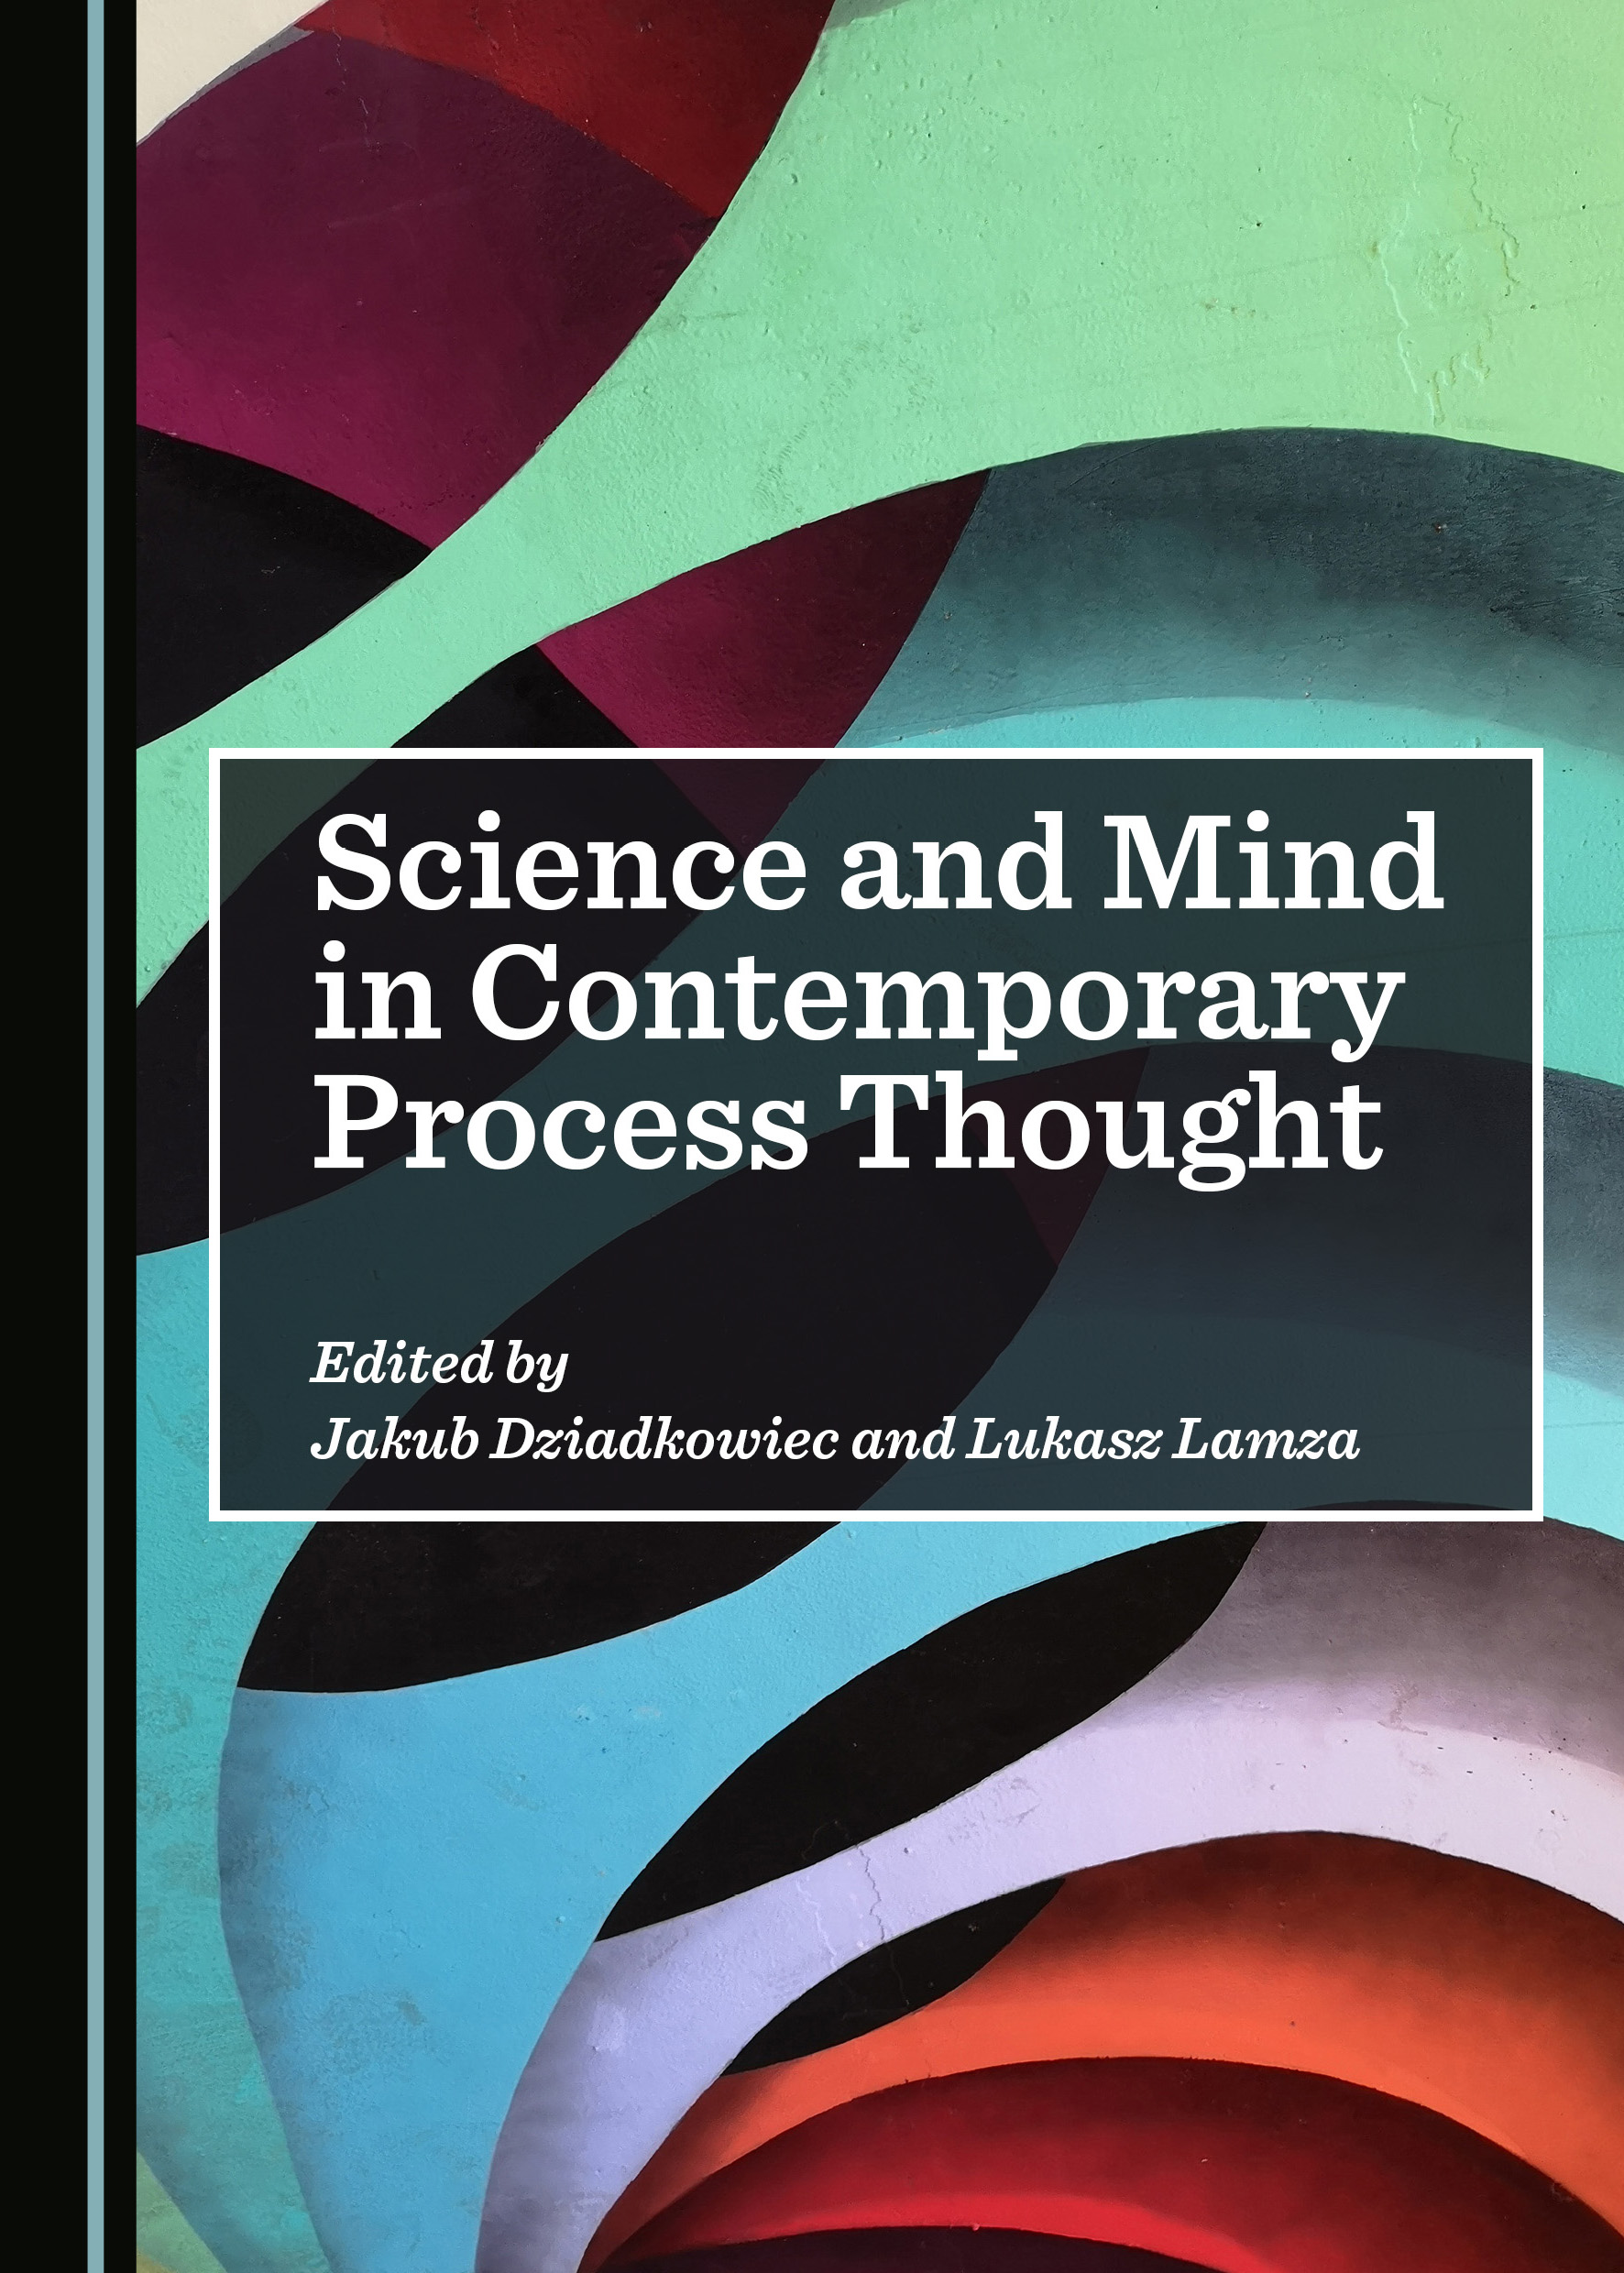 Science and Mind in Contemporary Process Thought